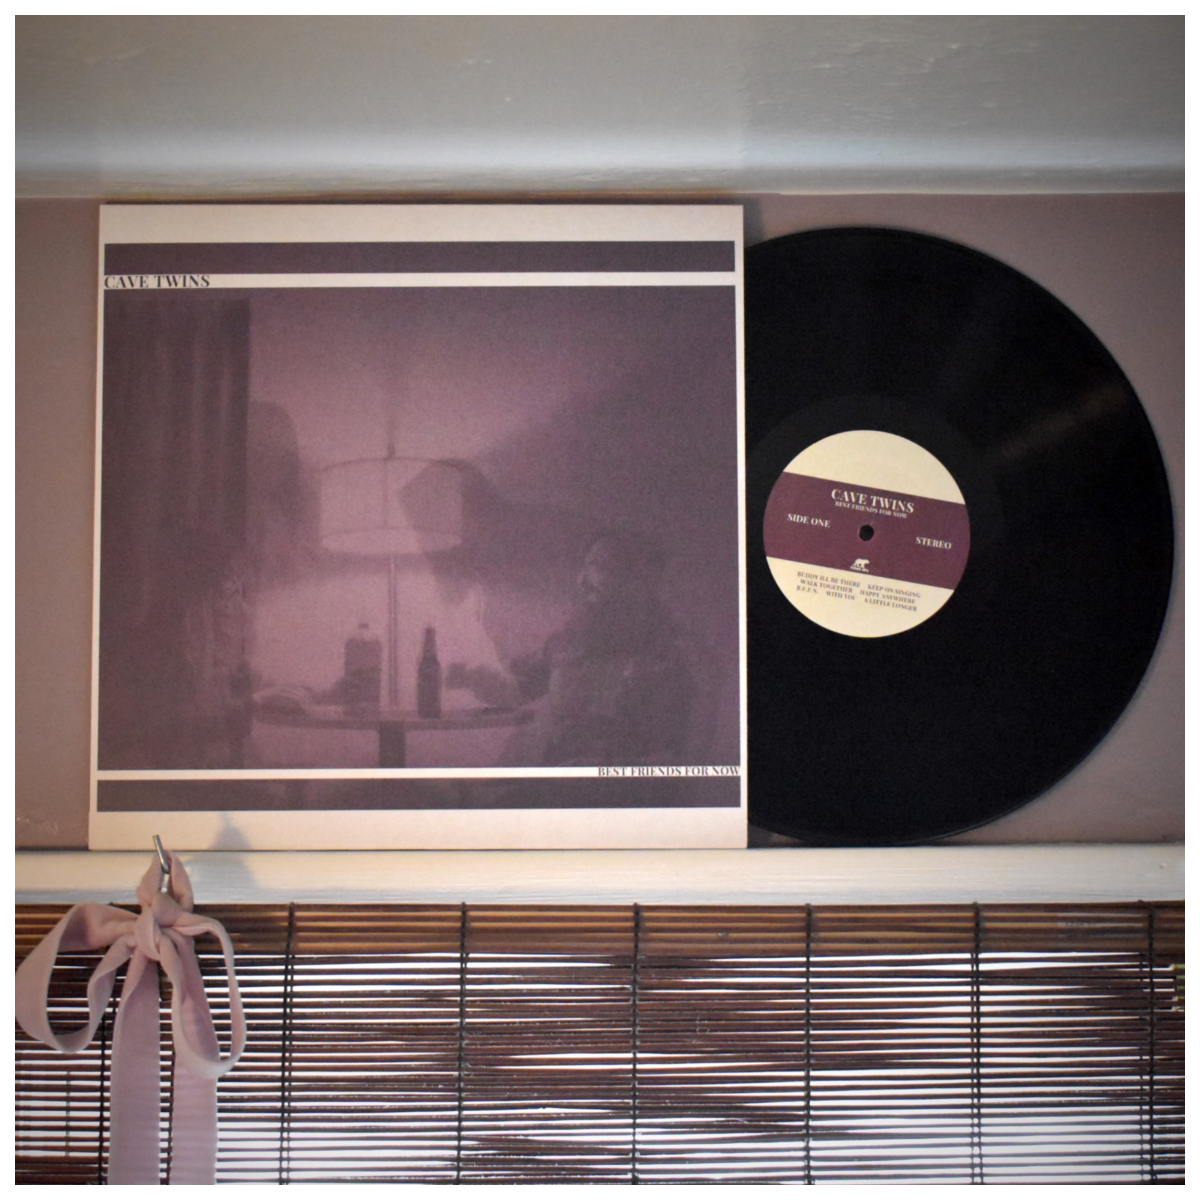 Best Friends For Now - Vinyl - $25 (shipping  included)